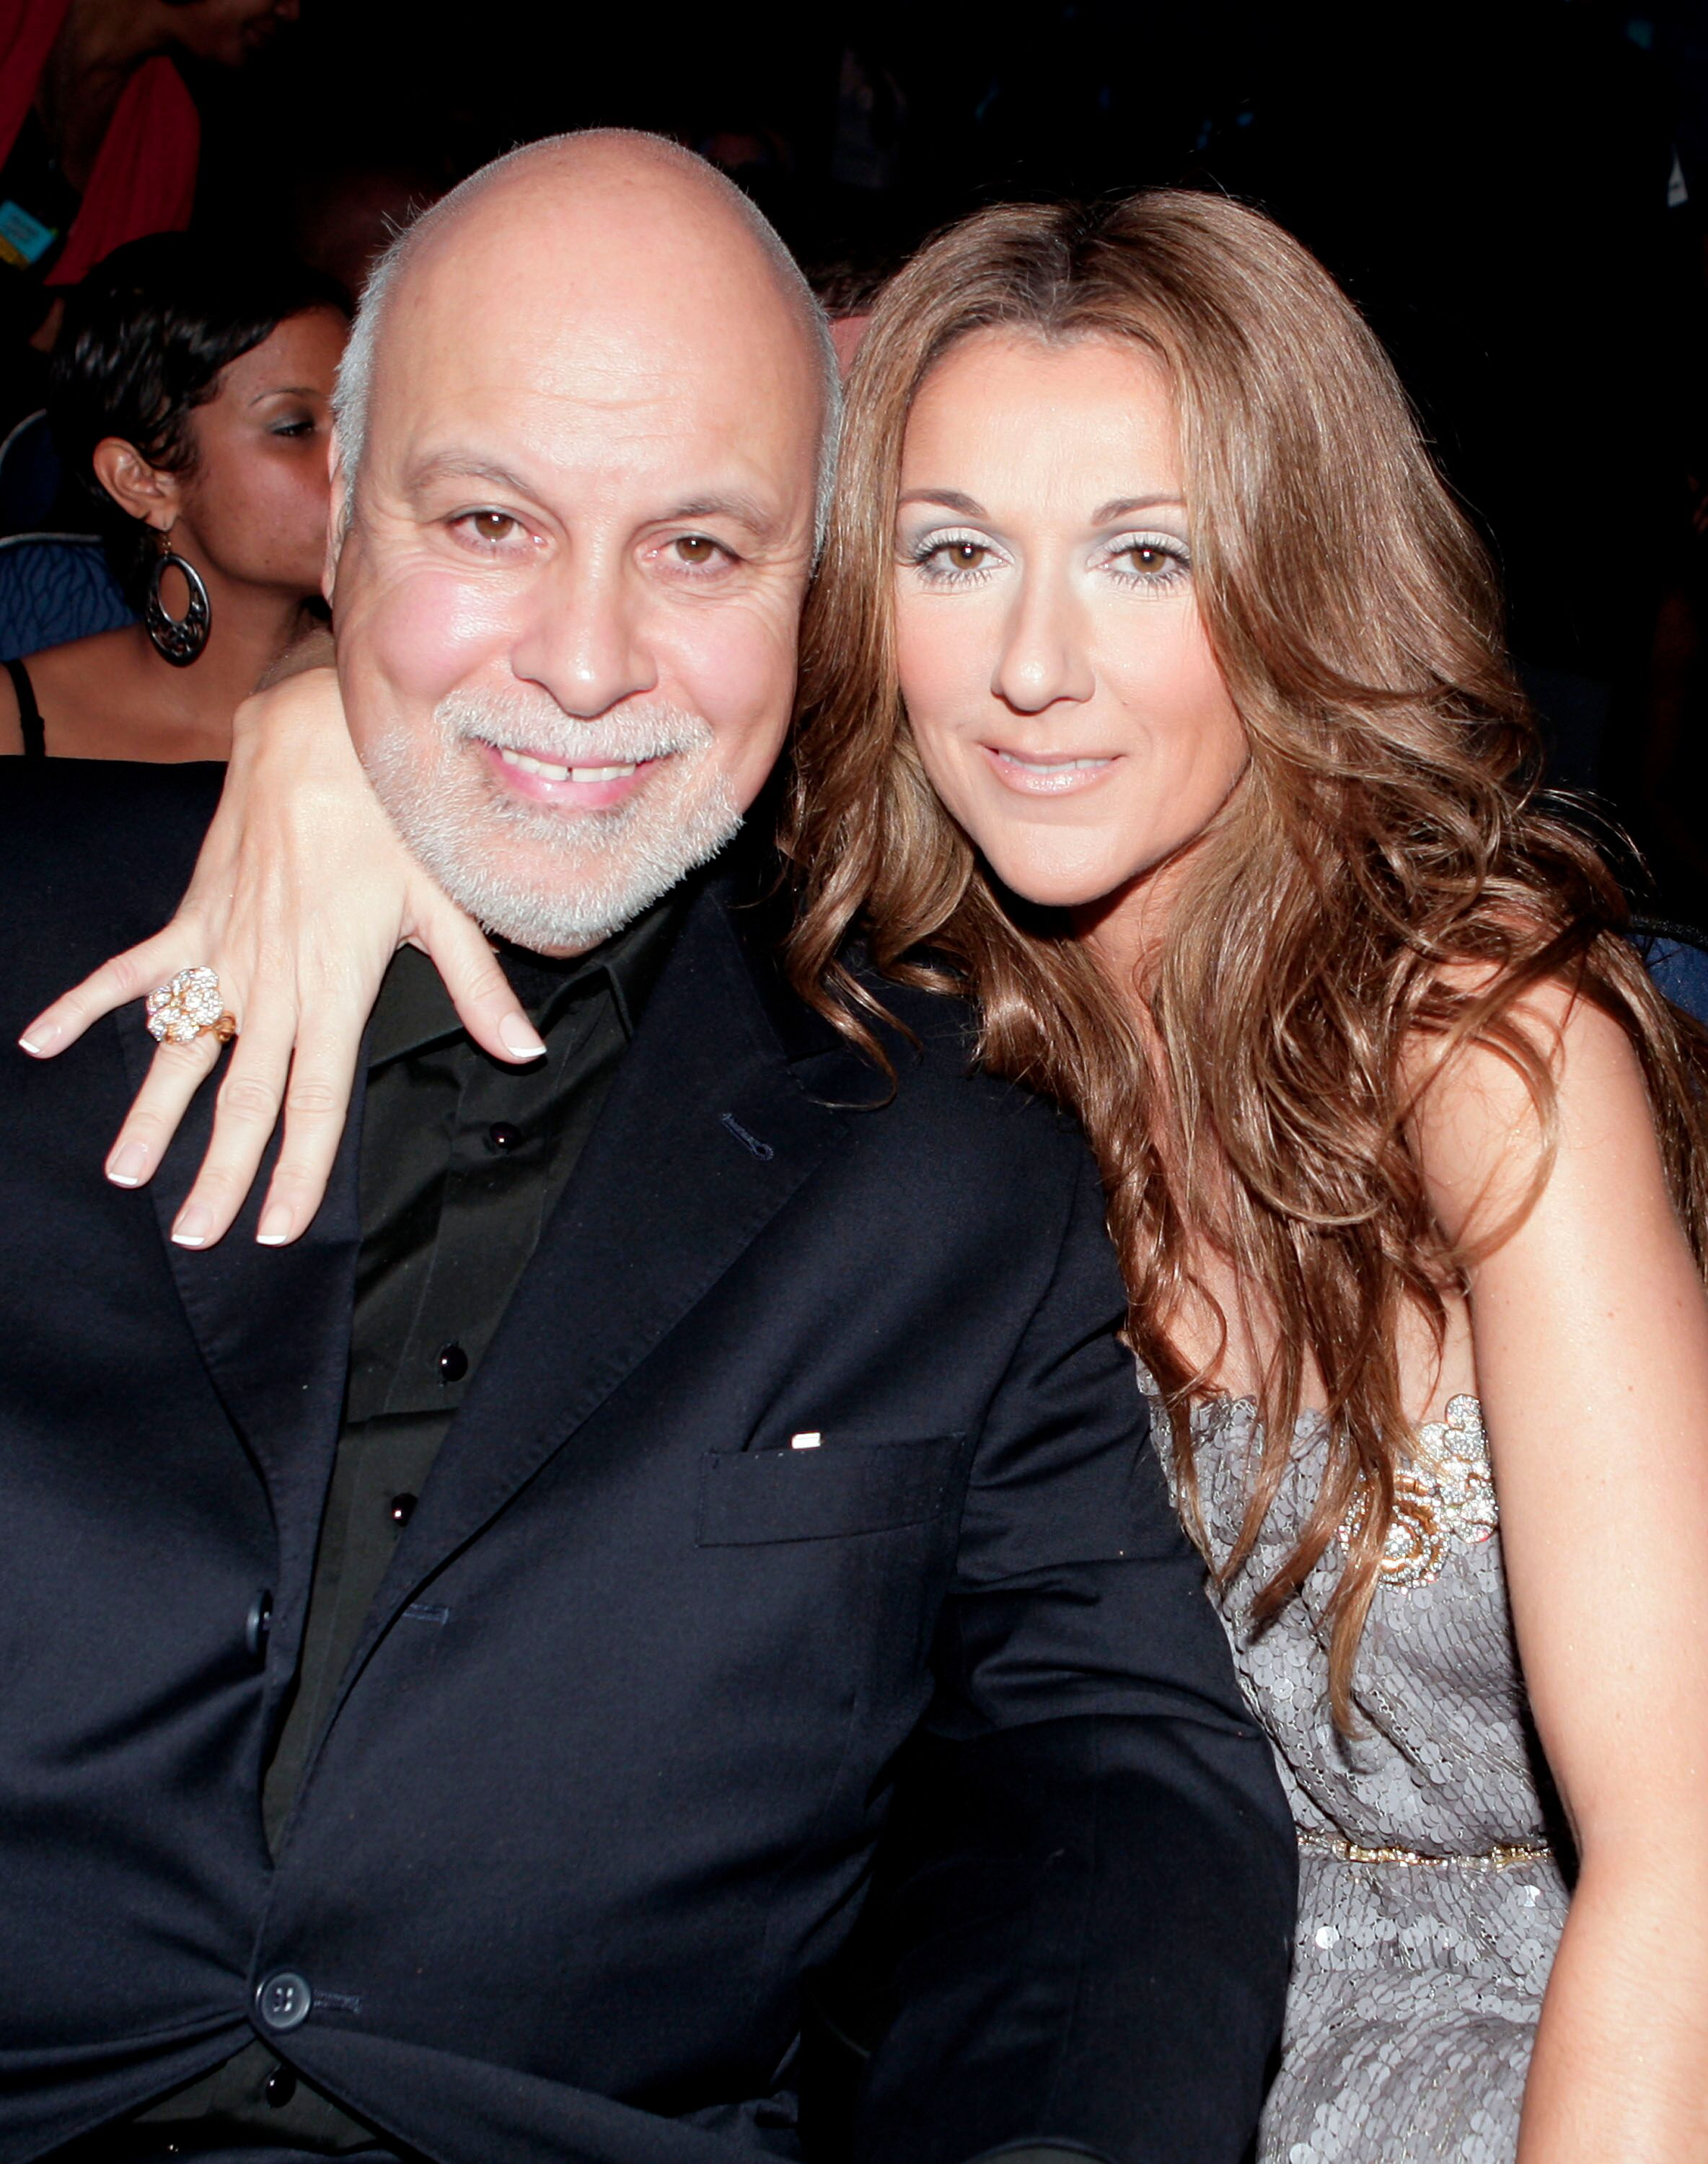 Manager Rene Angelil and Singer Celine Dion in the audience during the 2007 American Music Awards held at the Nokia Theatre L.A. LIVE on November 18, 2007 in Los Angeles, California | Photo: Getty Images